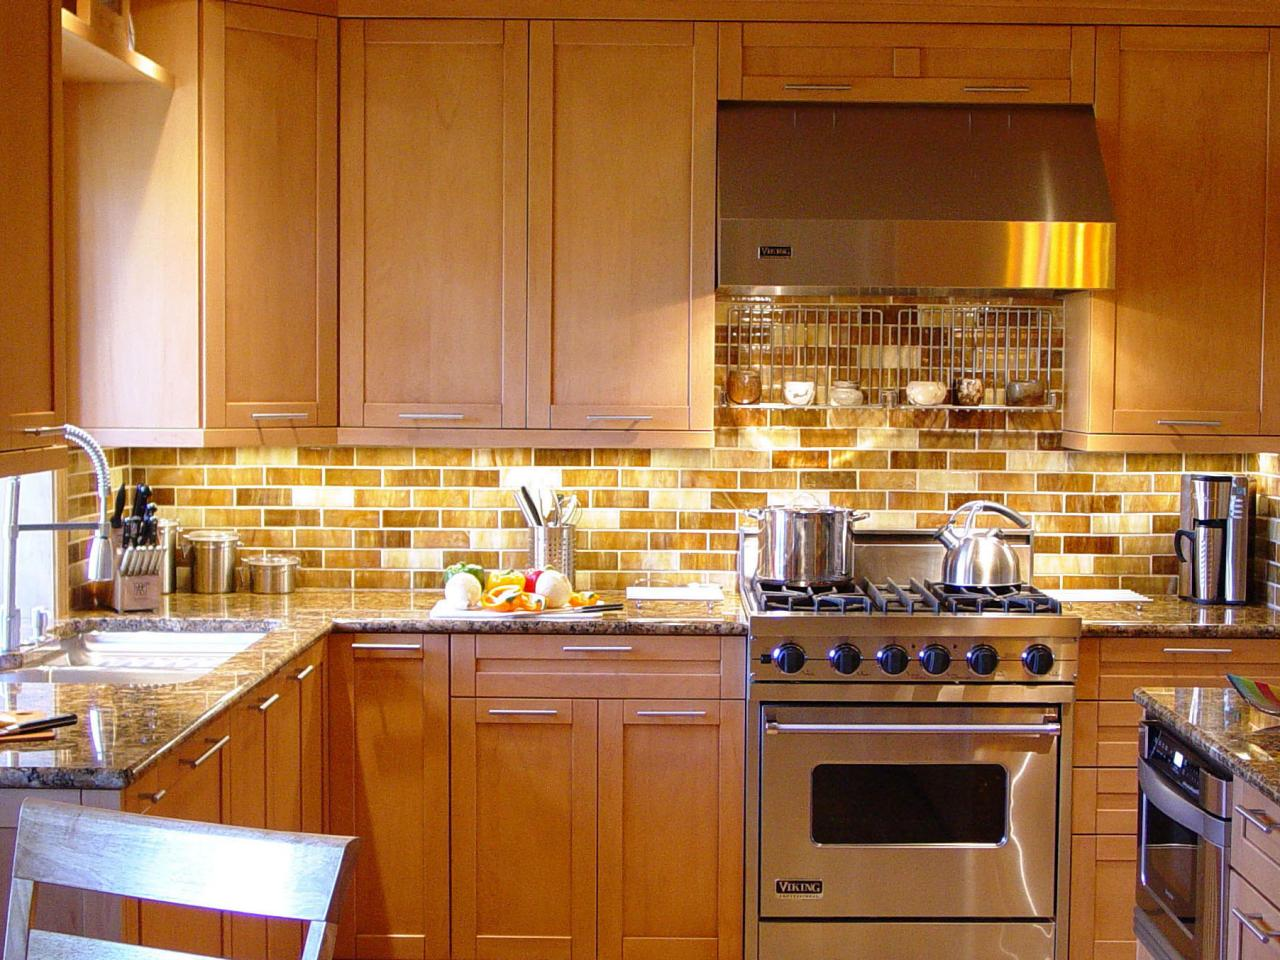 Brown Subway Tile Backsplash Combined With Sleek Wooden Cabinets And  Stainless Steel Stove